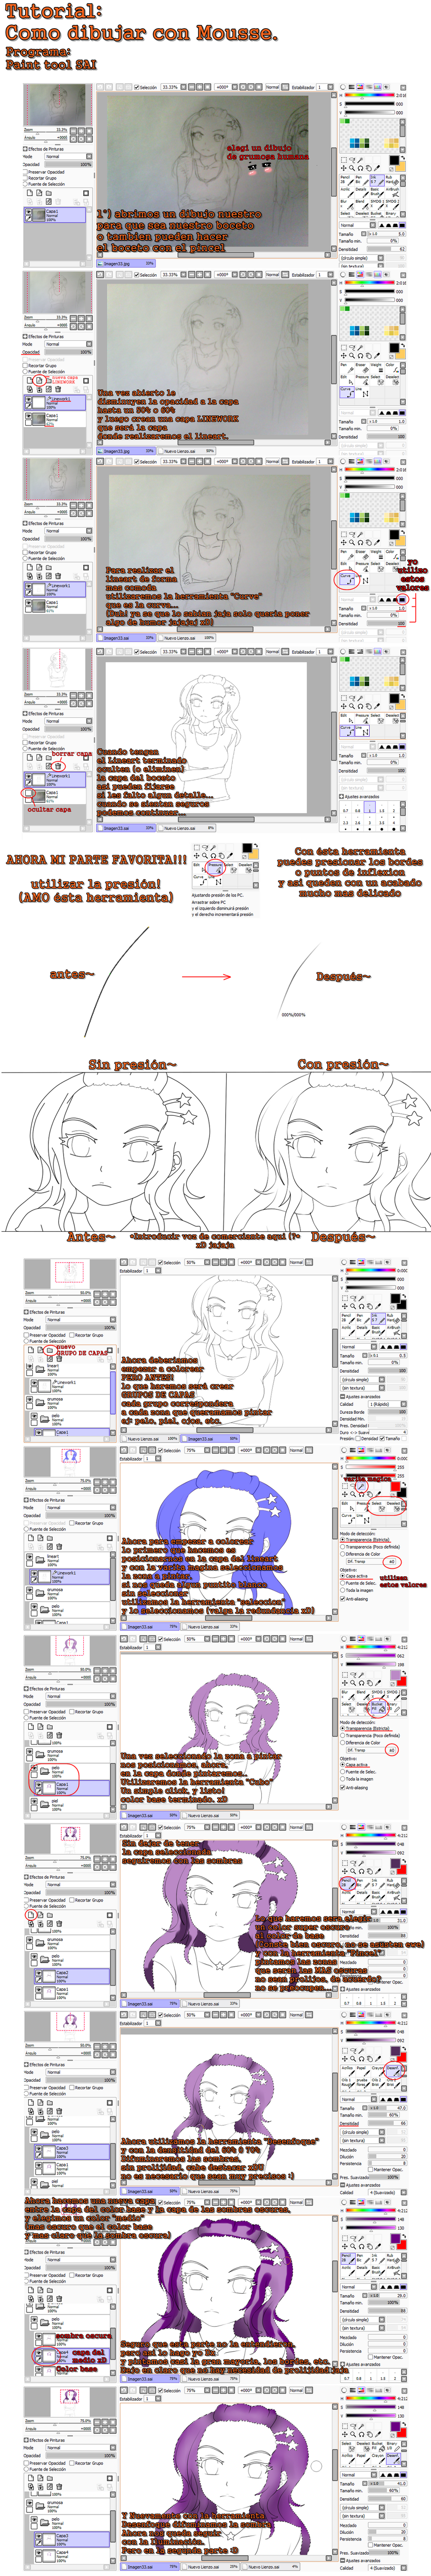 TUTORIAL~ dibujo con mouse Part. 1 (only spanish) by NarukoMegpoid